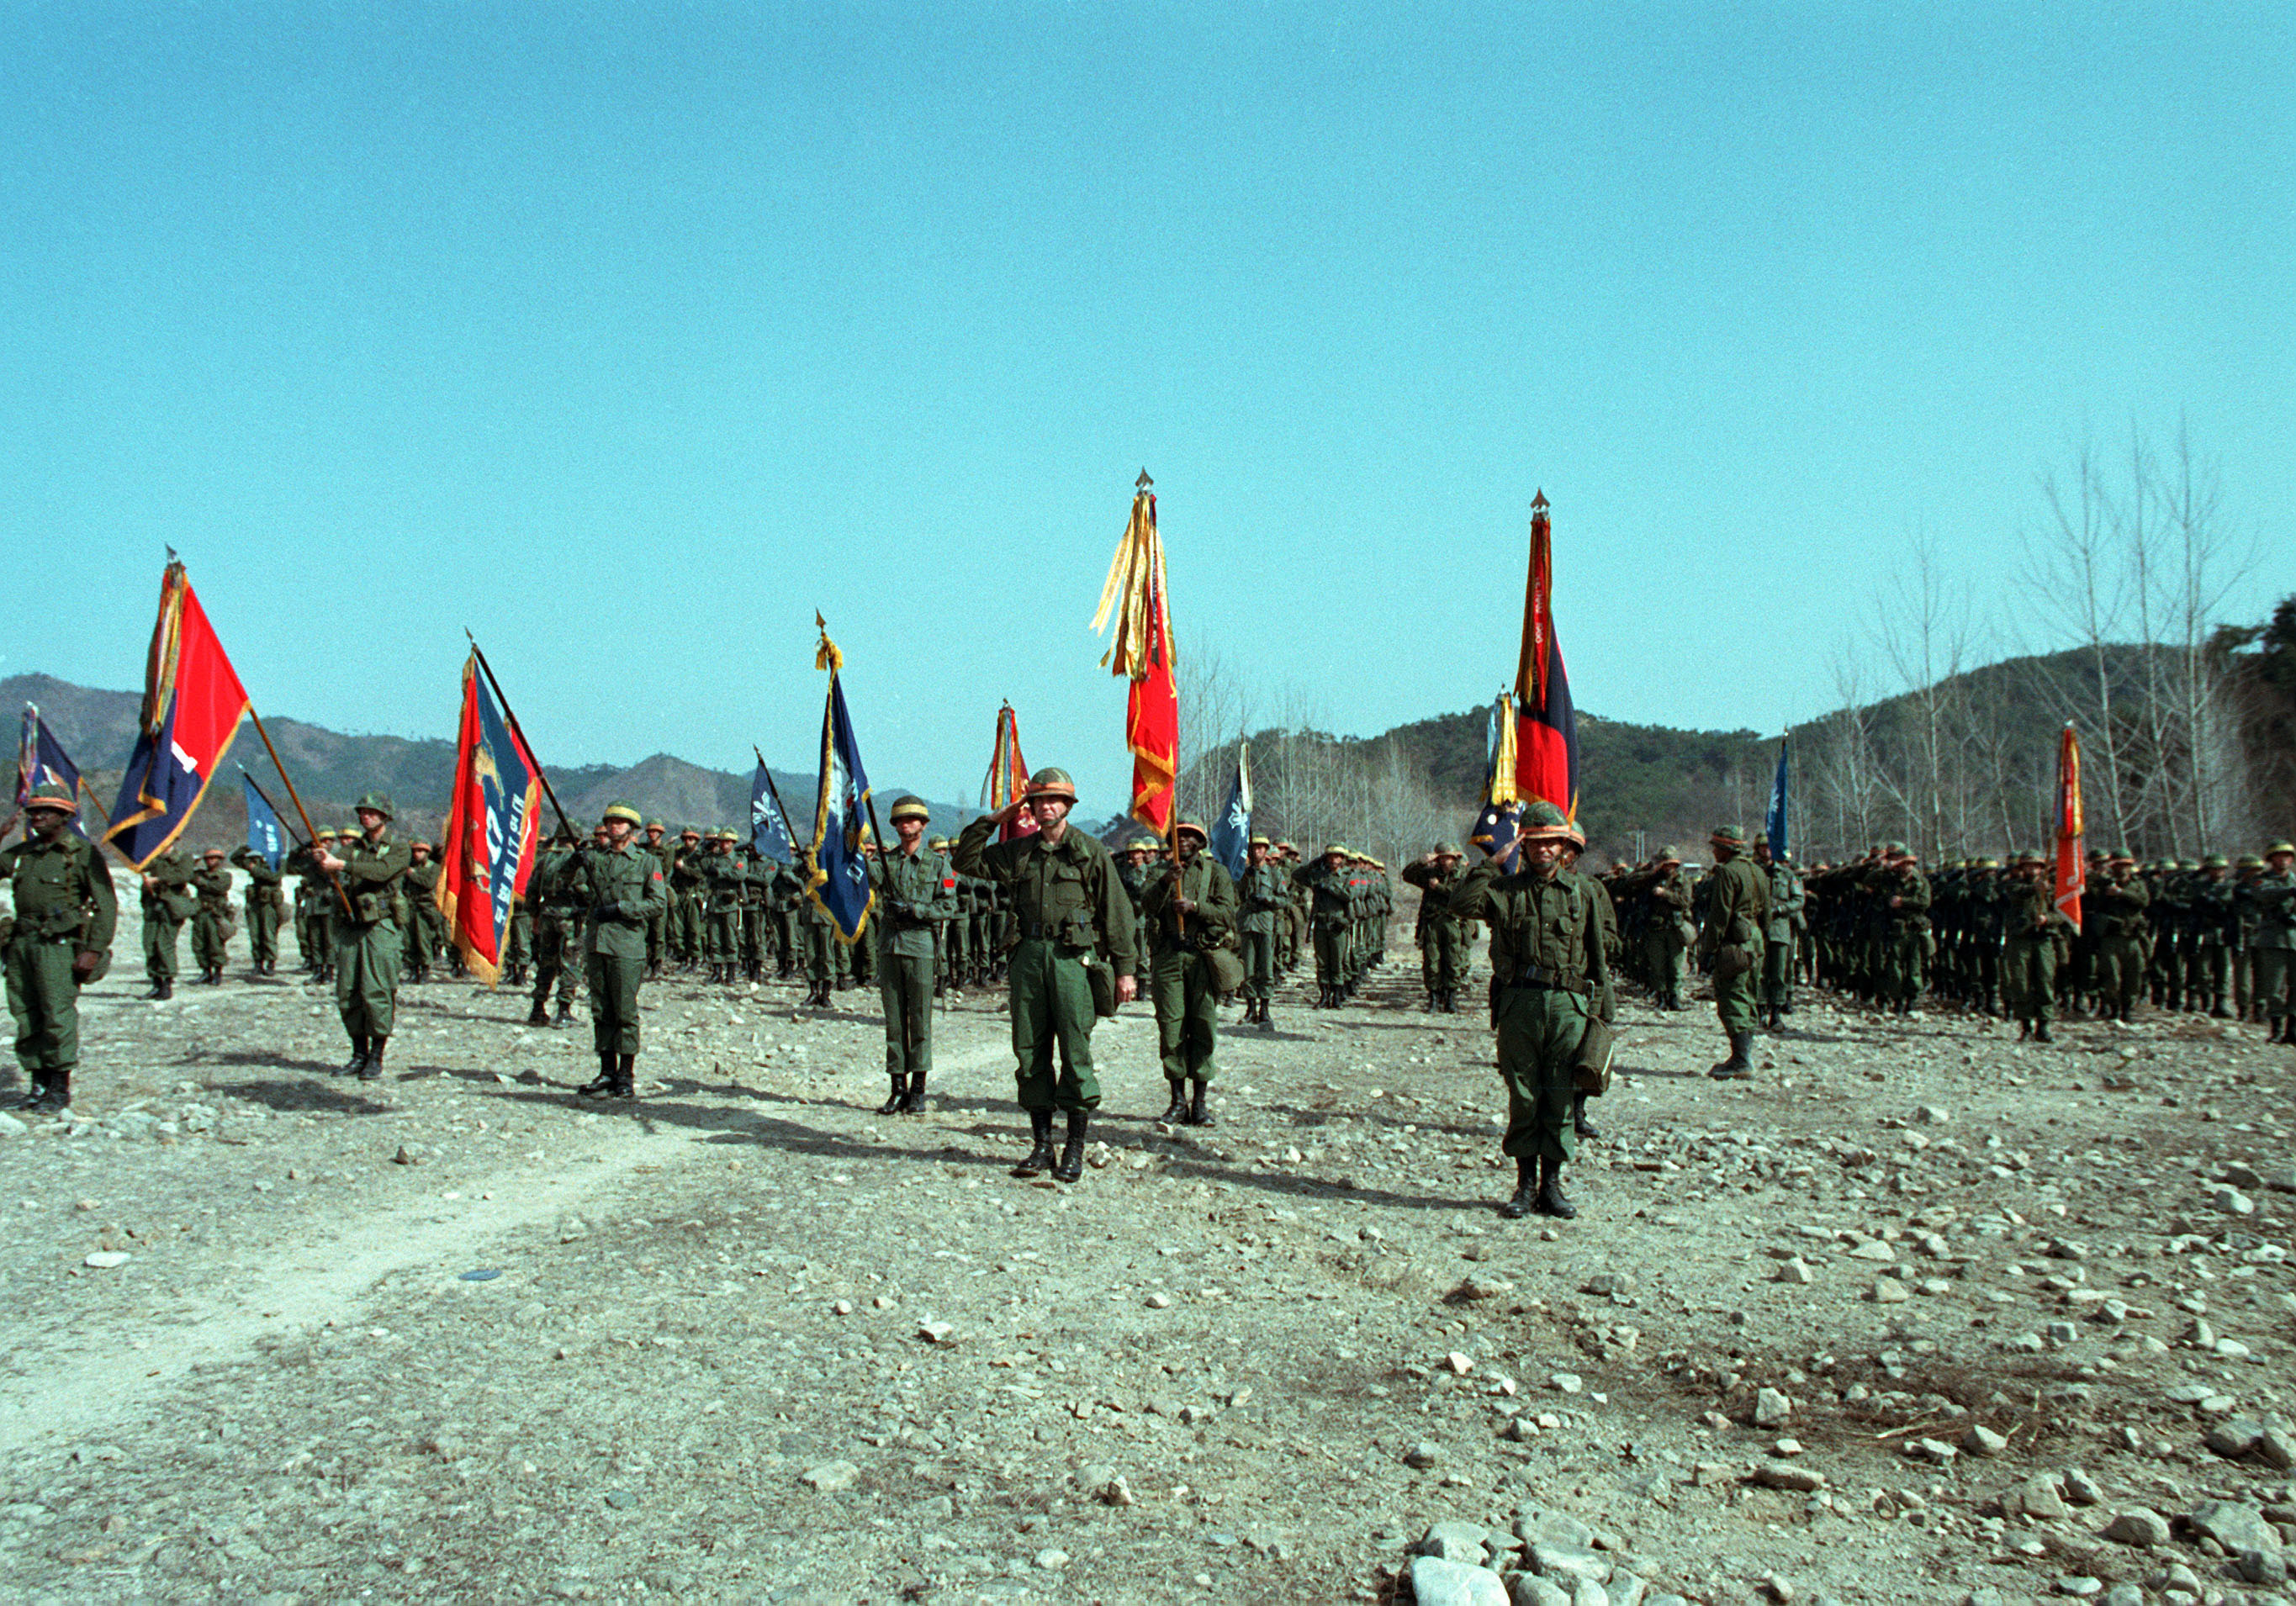 Major General William H. Schneider (center), Commander, 25th Infantry Division, salutes as the Korean and US National Anthems are played during the operational Control ceremony for the joint ROK/US training Exercise TEAM SPIRIT '83